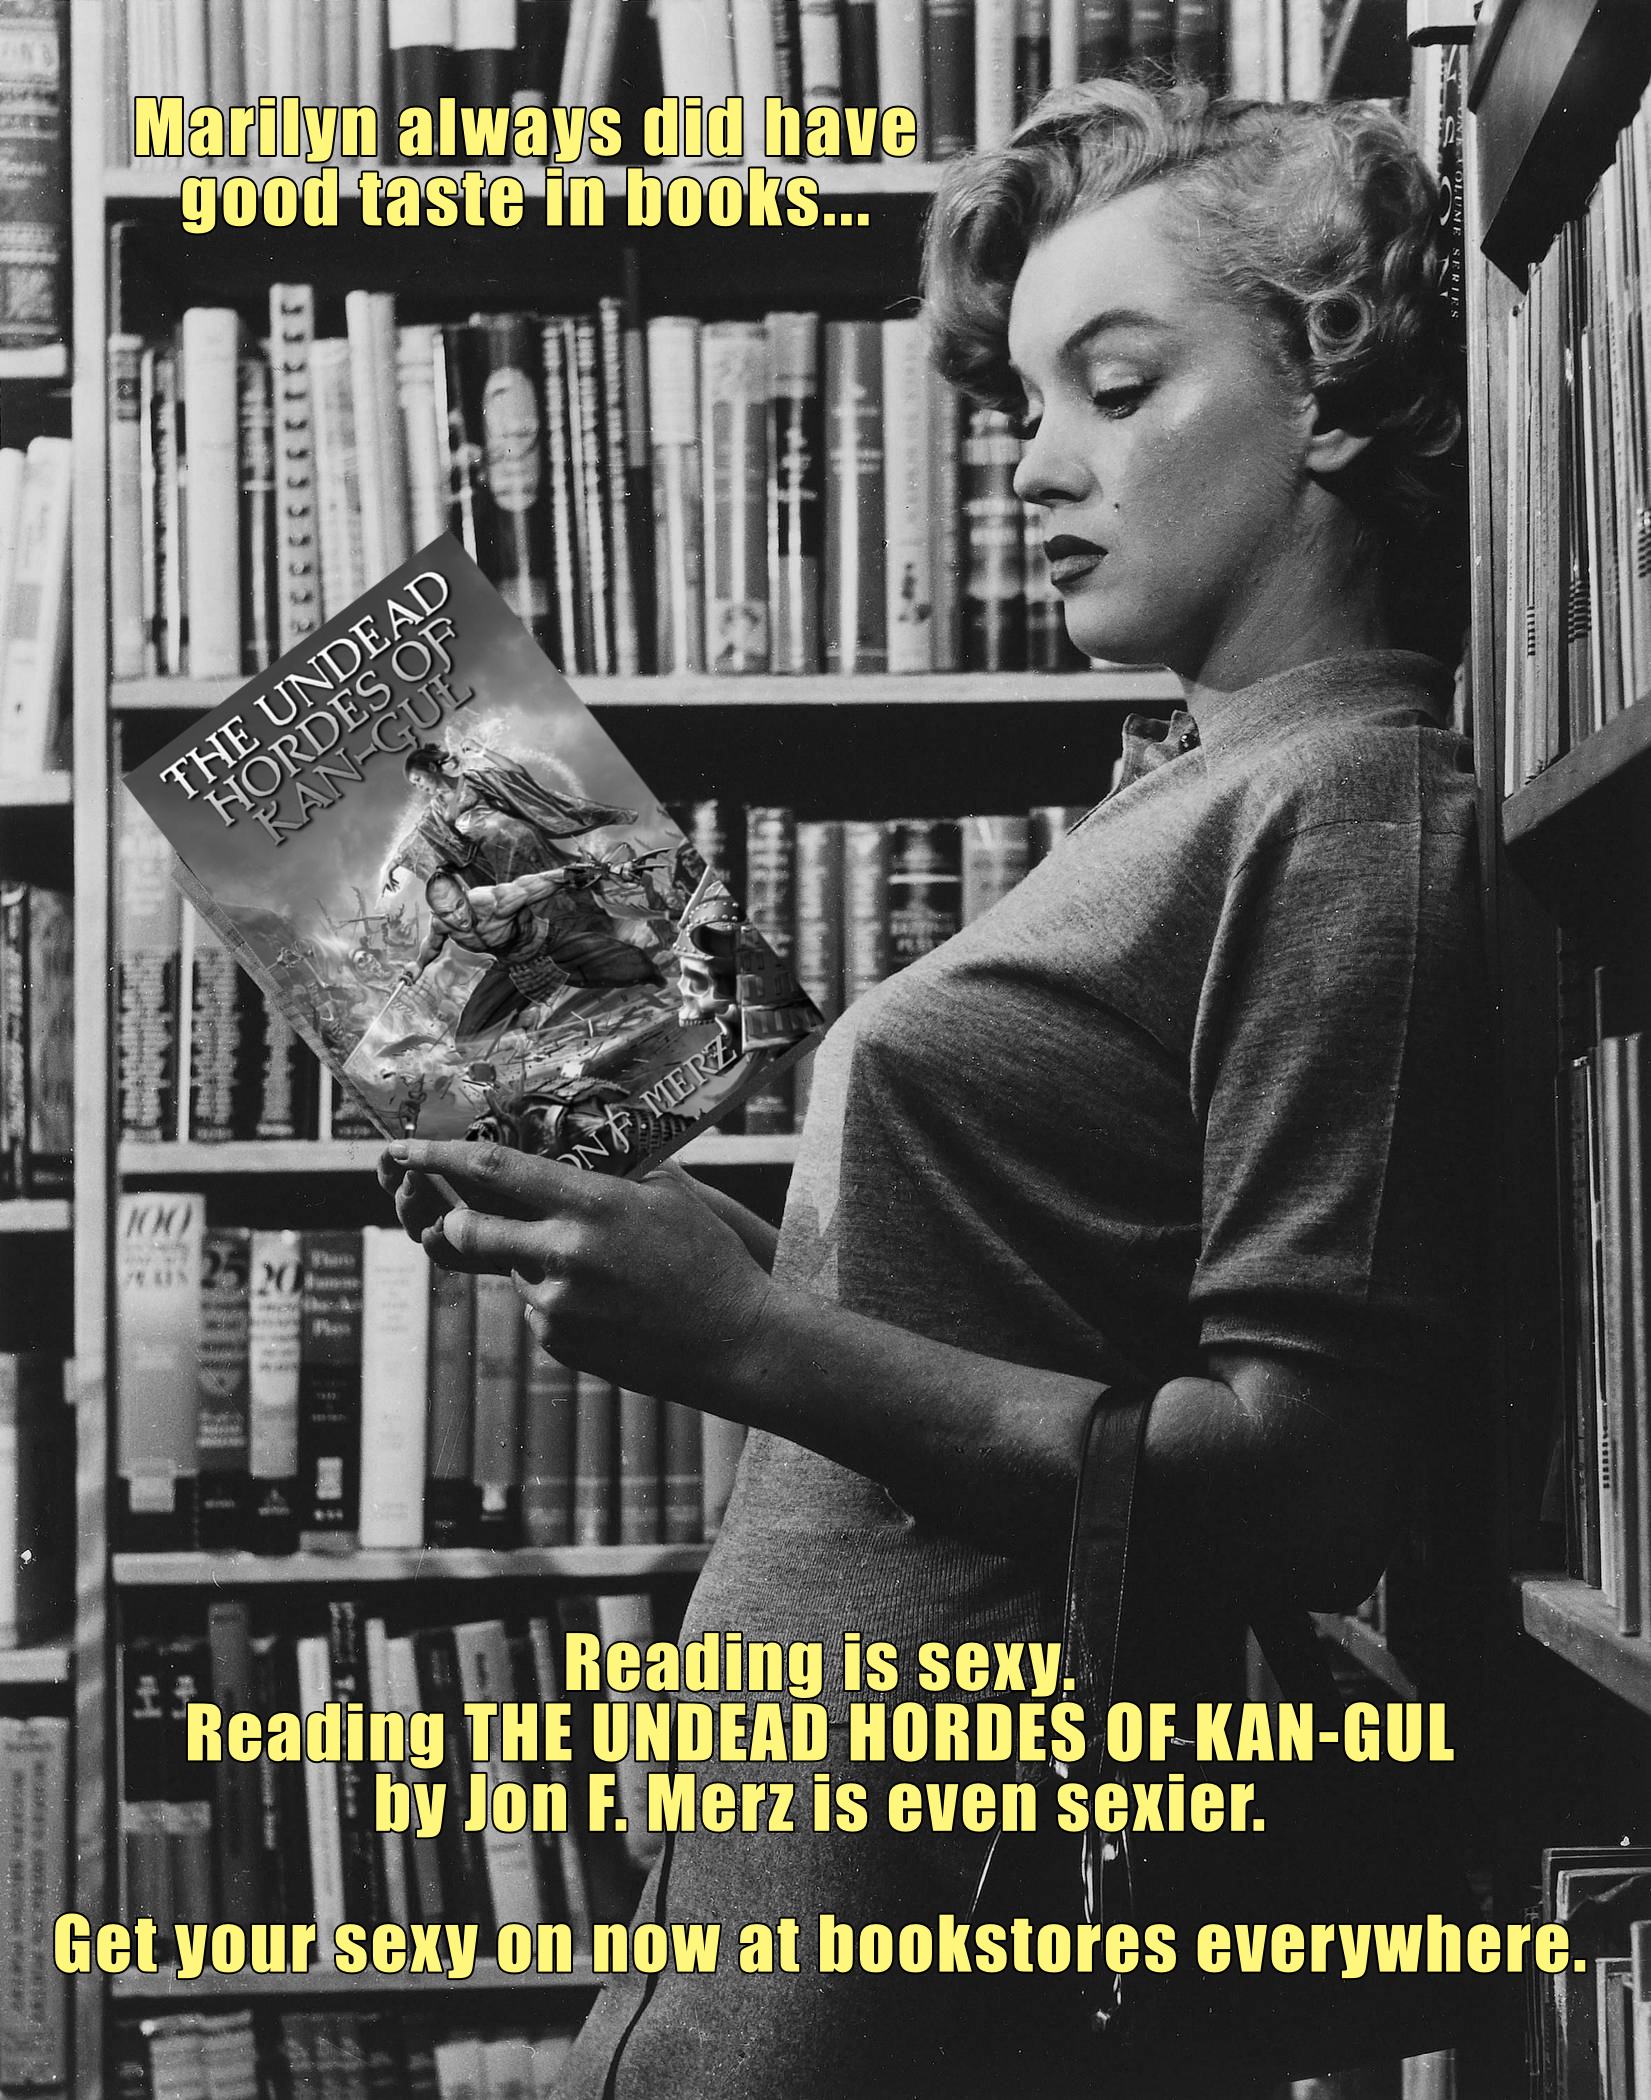 promotional meme for the undead hordes of kan-gul by jon f. merz